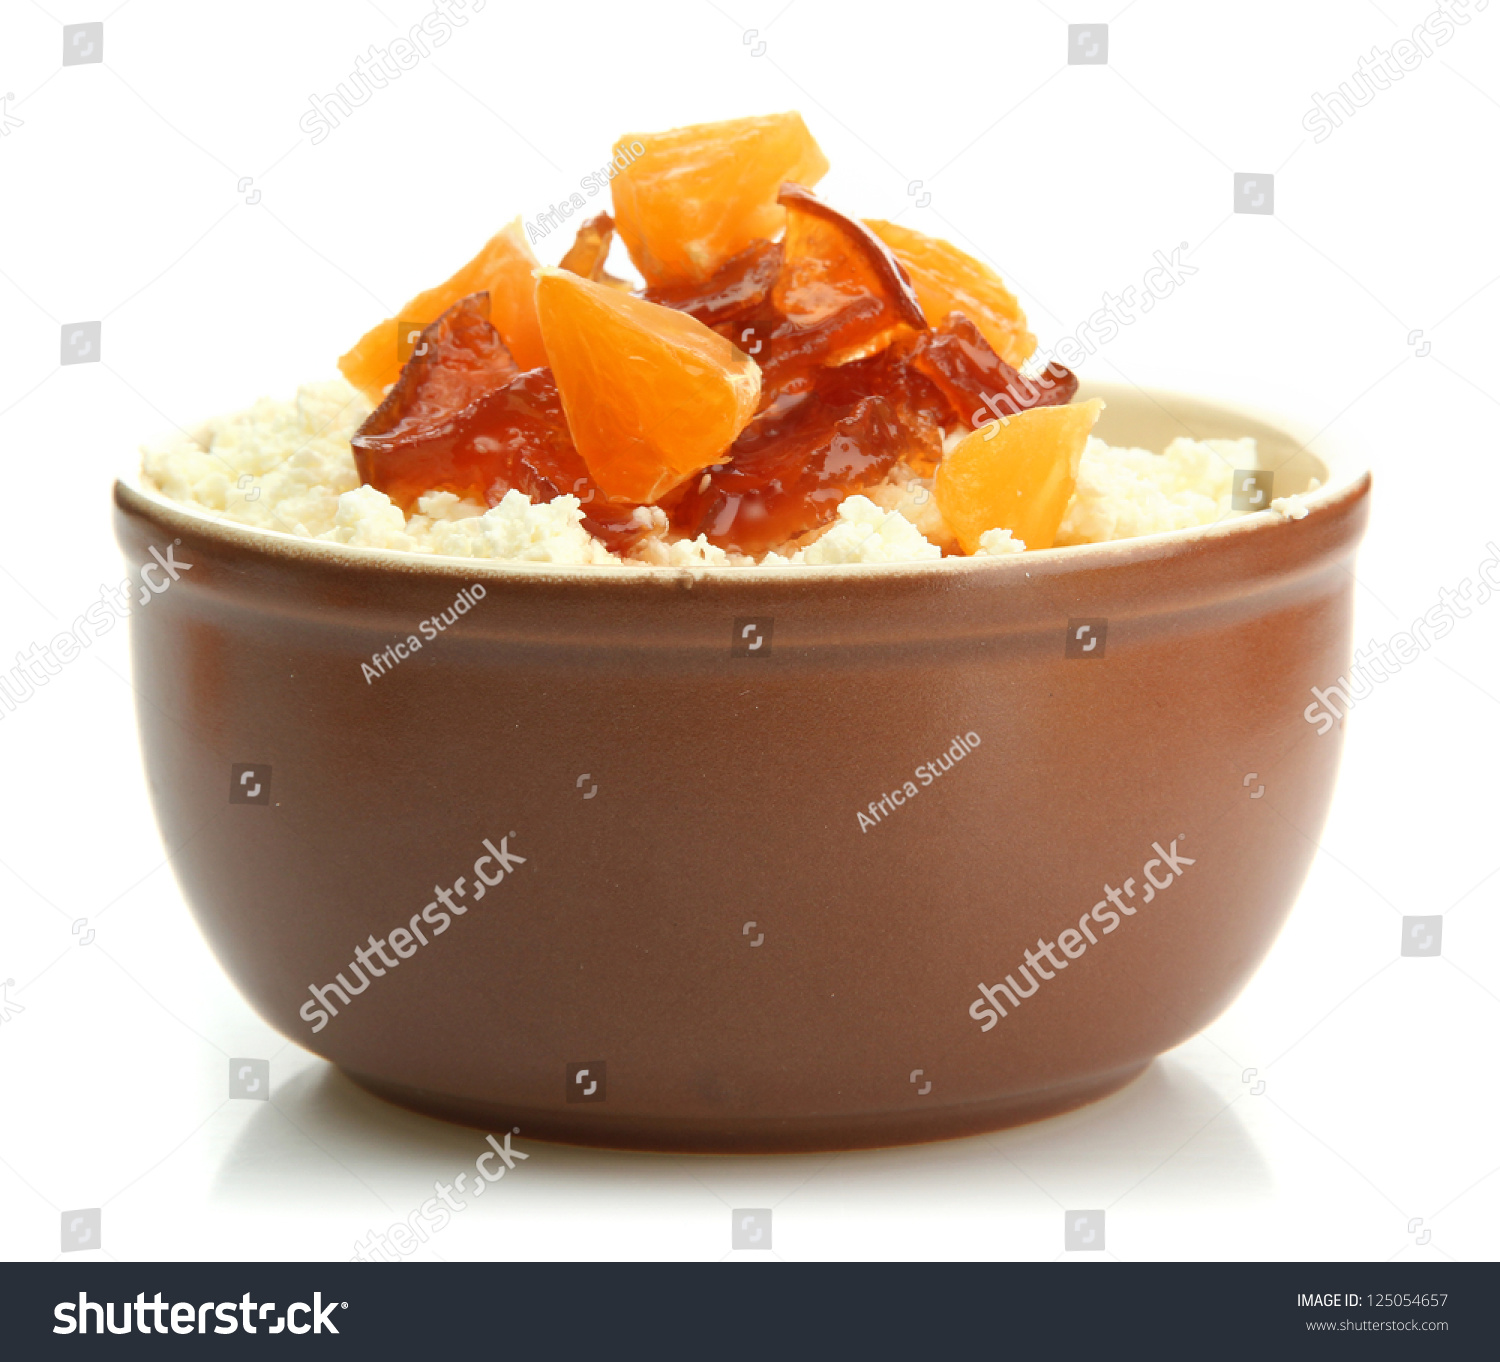 Cottage Cheese With Jam: Cottage Cheese In Bowl With Homemade Tangerine Jam